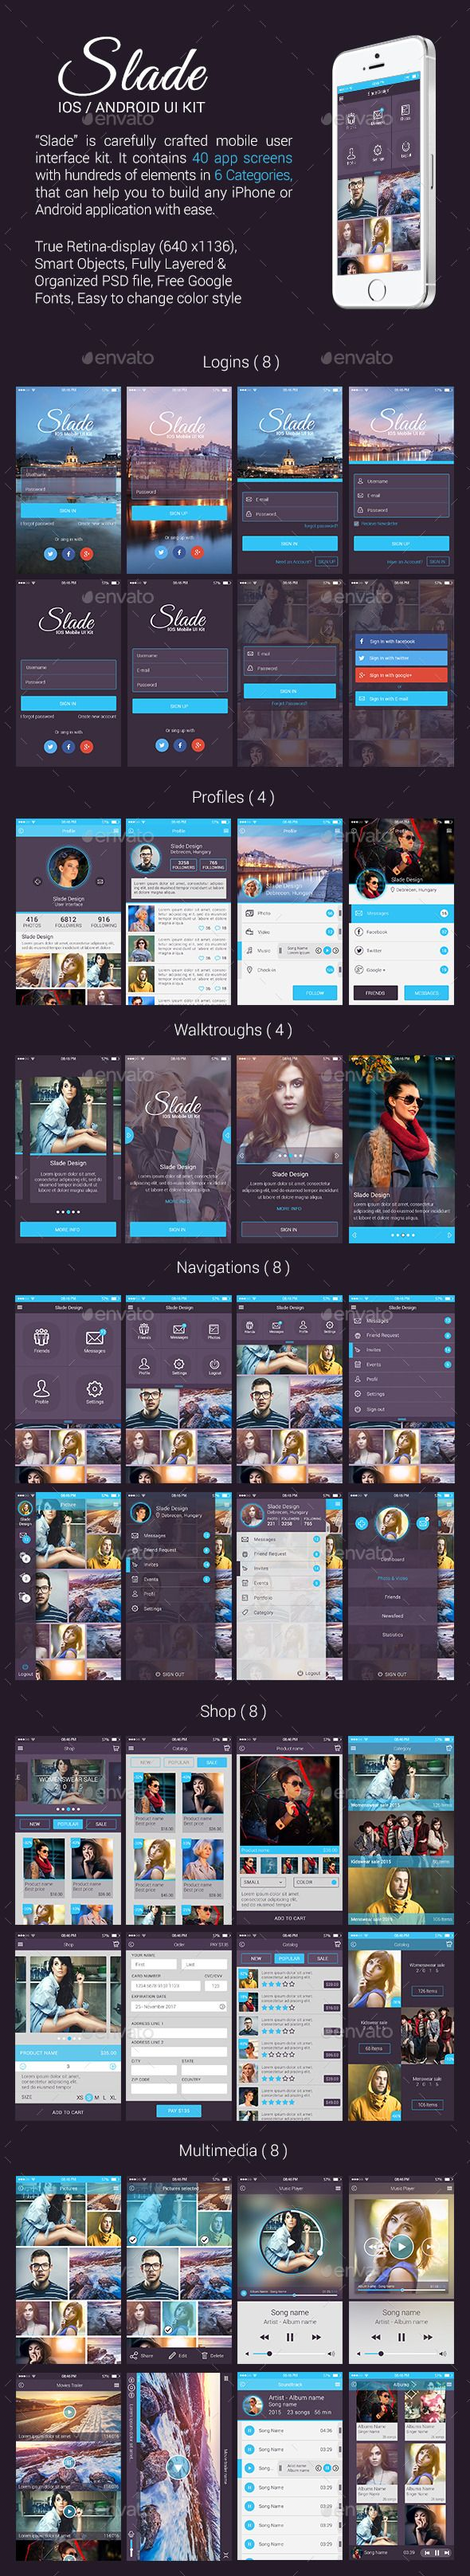 Slade iOS / Android UI Kit (User Interfaces)